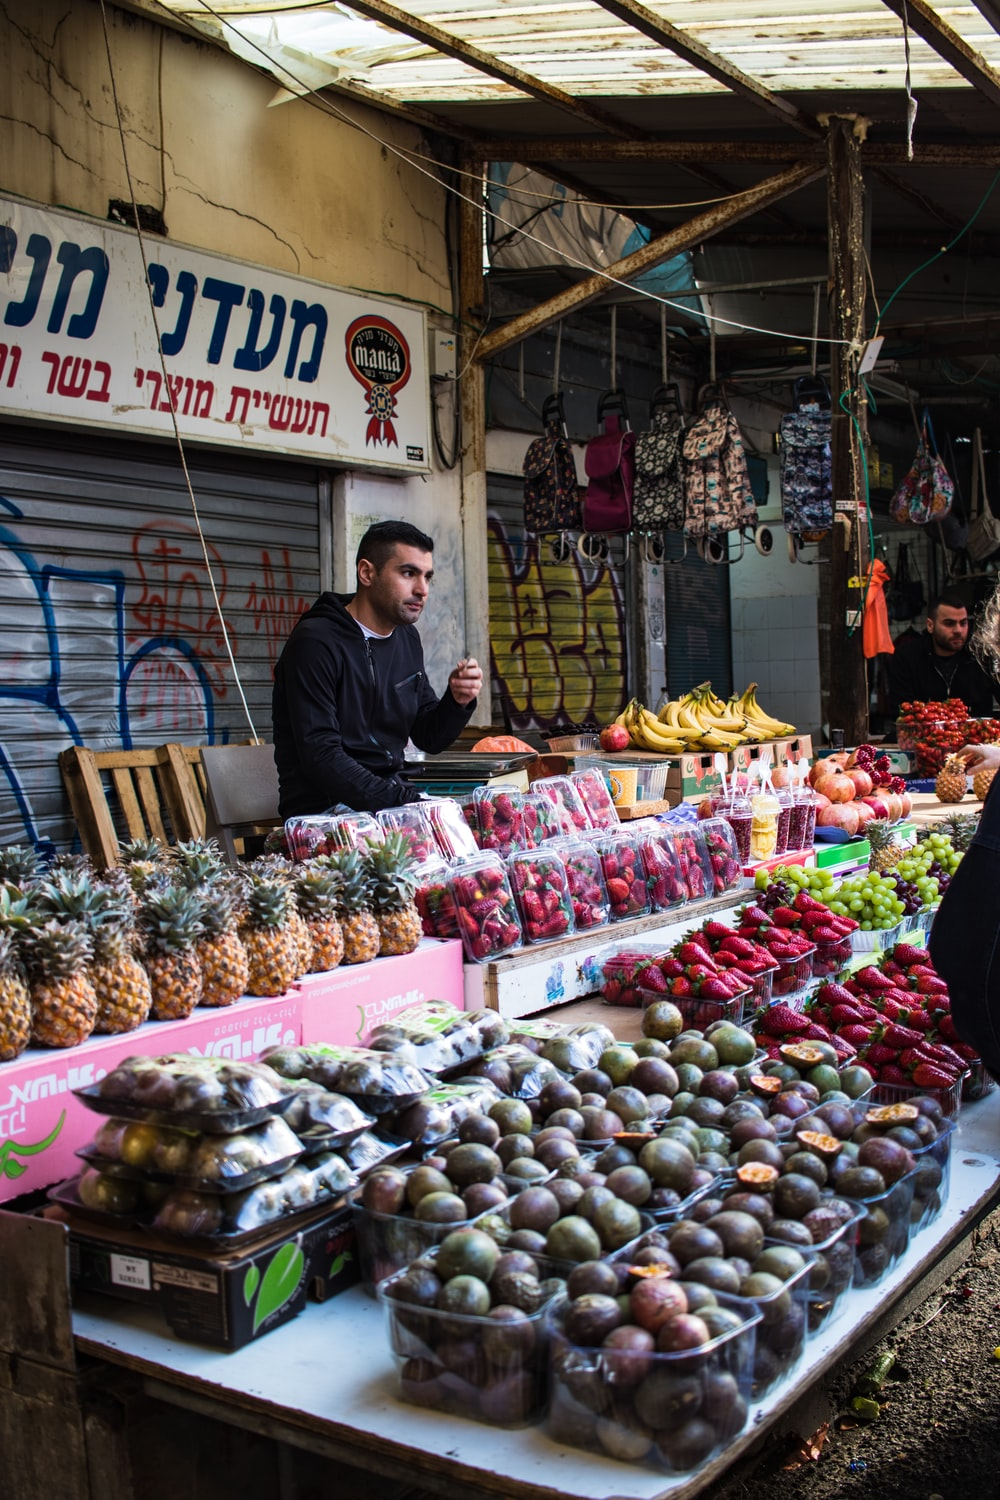 man in black long sleeve shirt standing in front of fruit stand